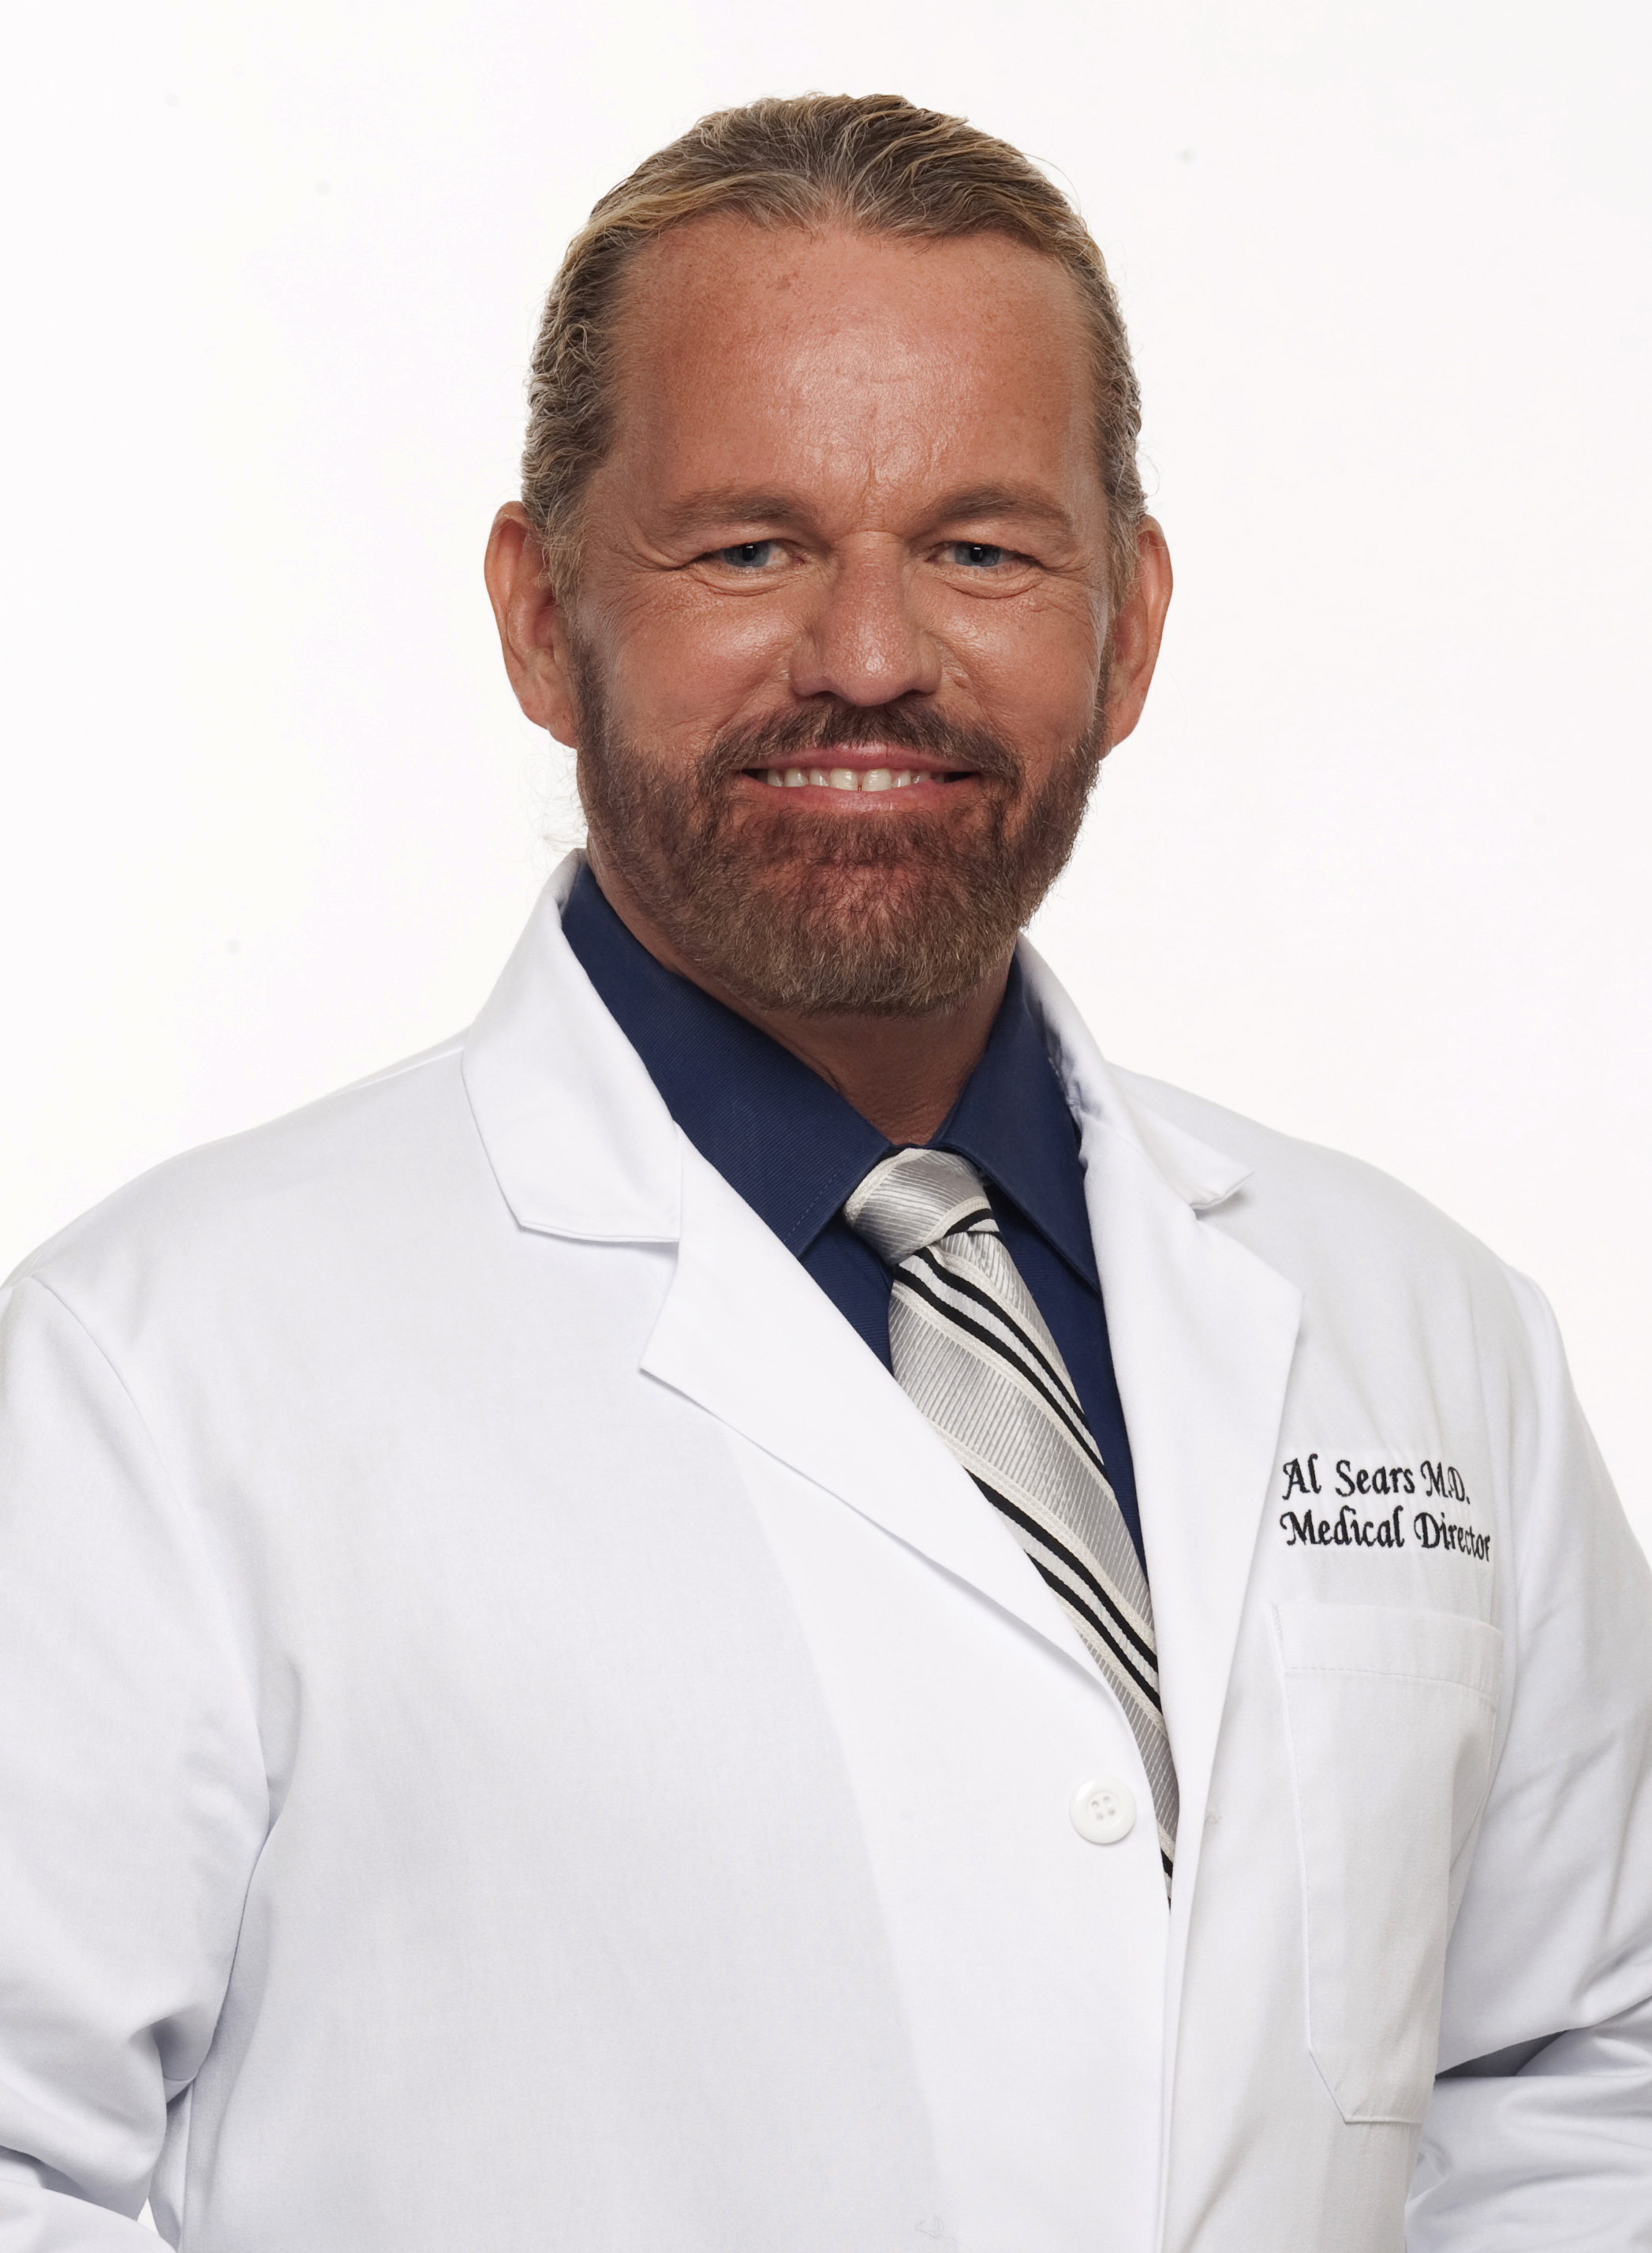 Dr al sears md makes weight loss easy with time release paleo pill